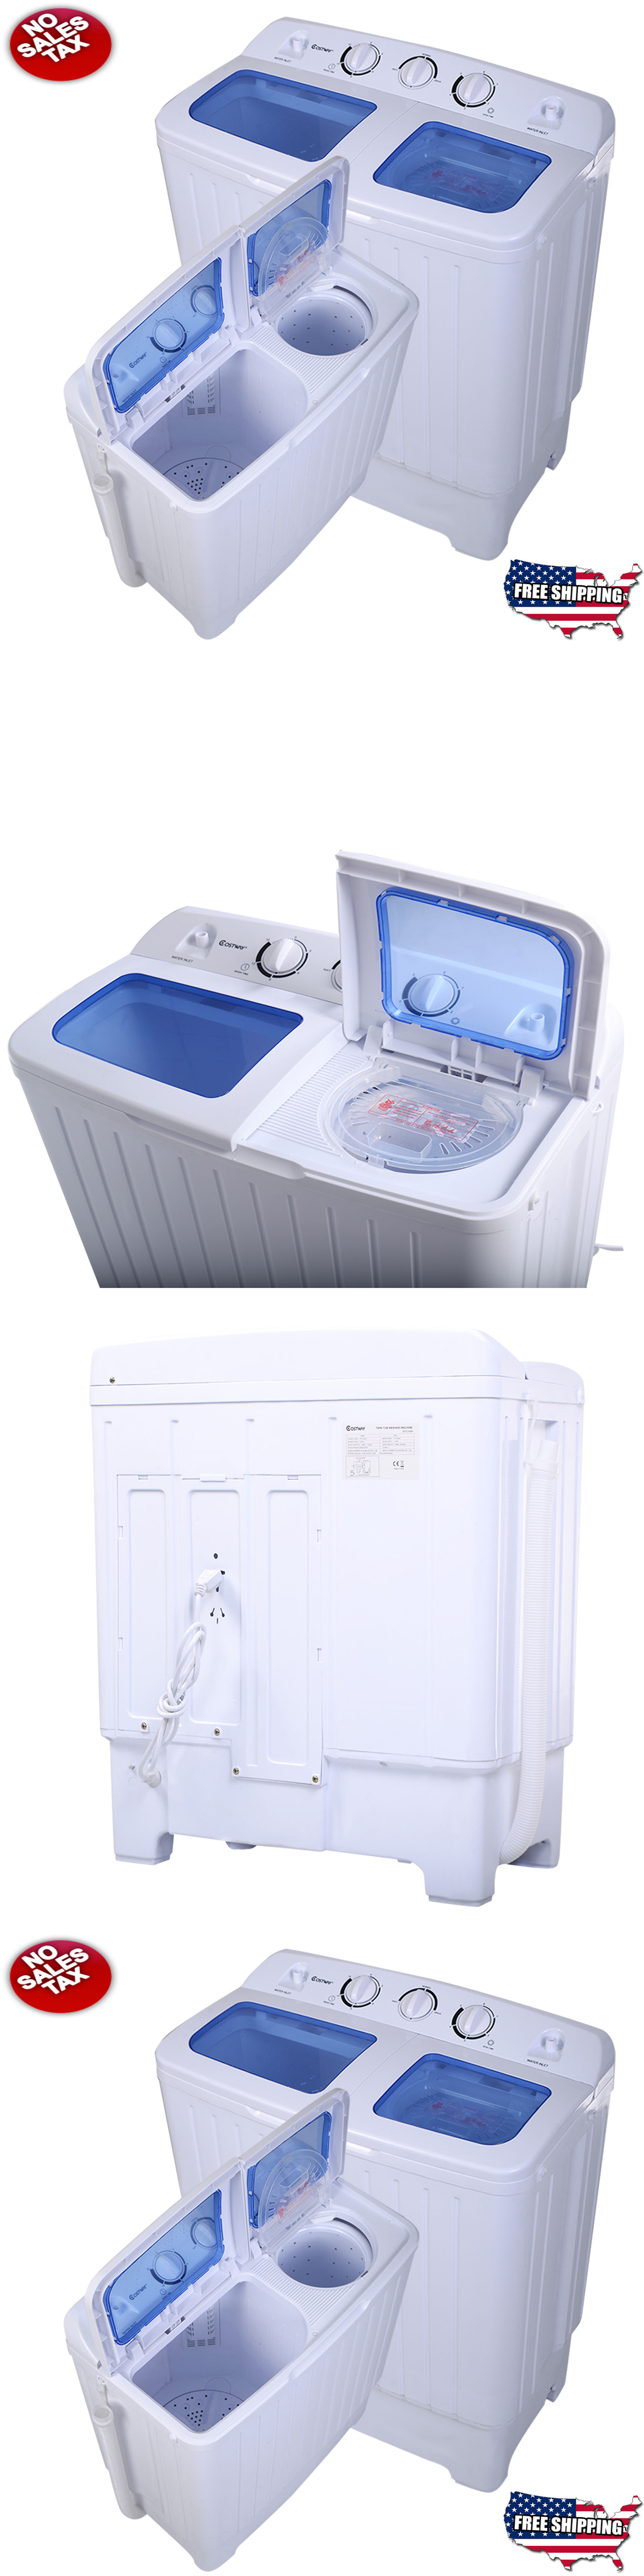 Washer and Dryer Sets 71257: All In One Portable Washing ...